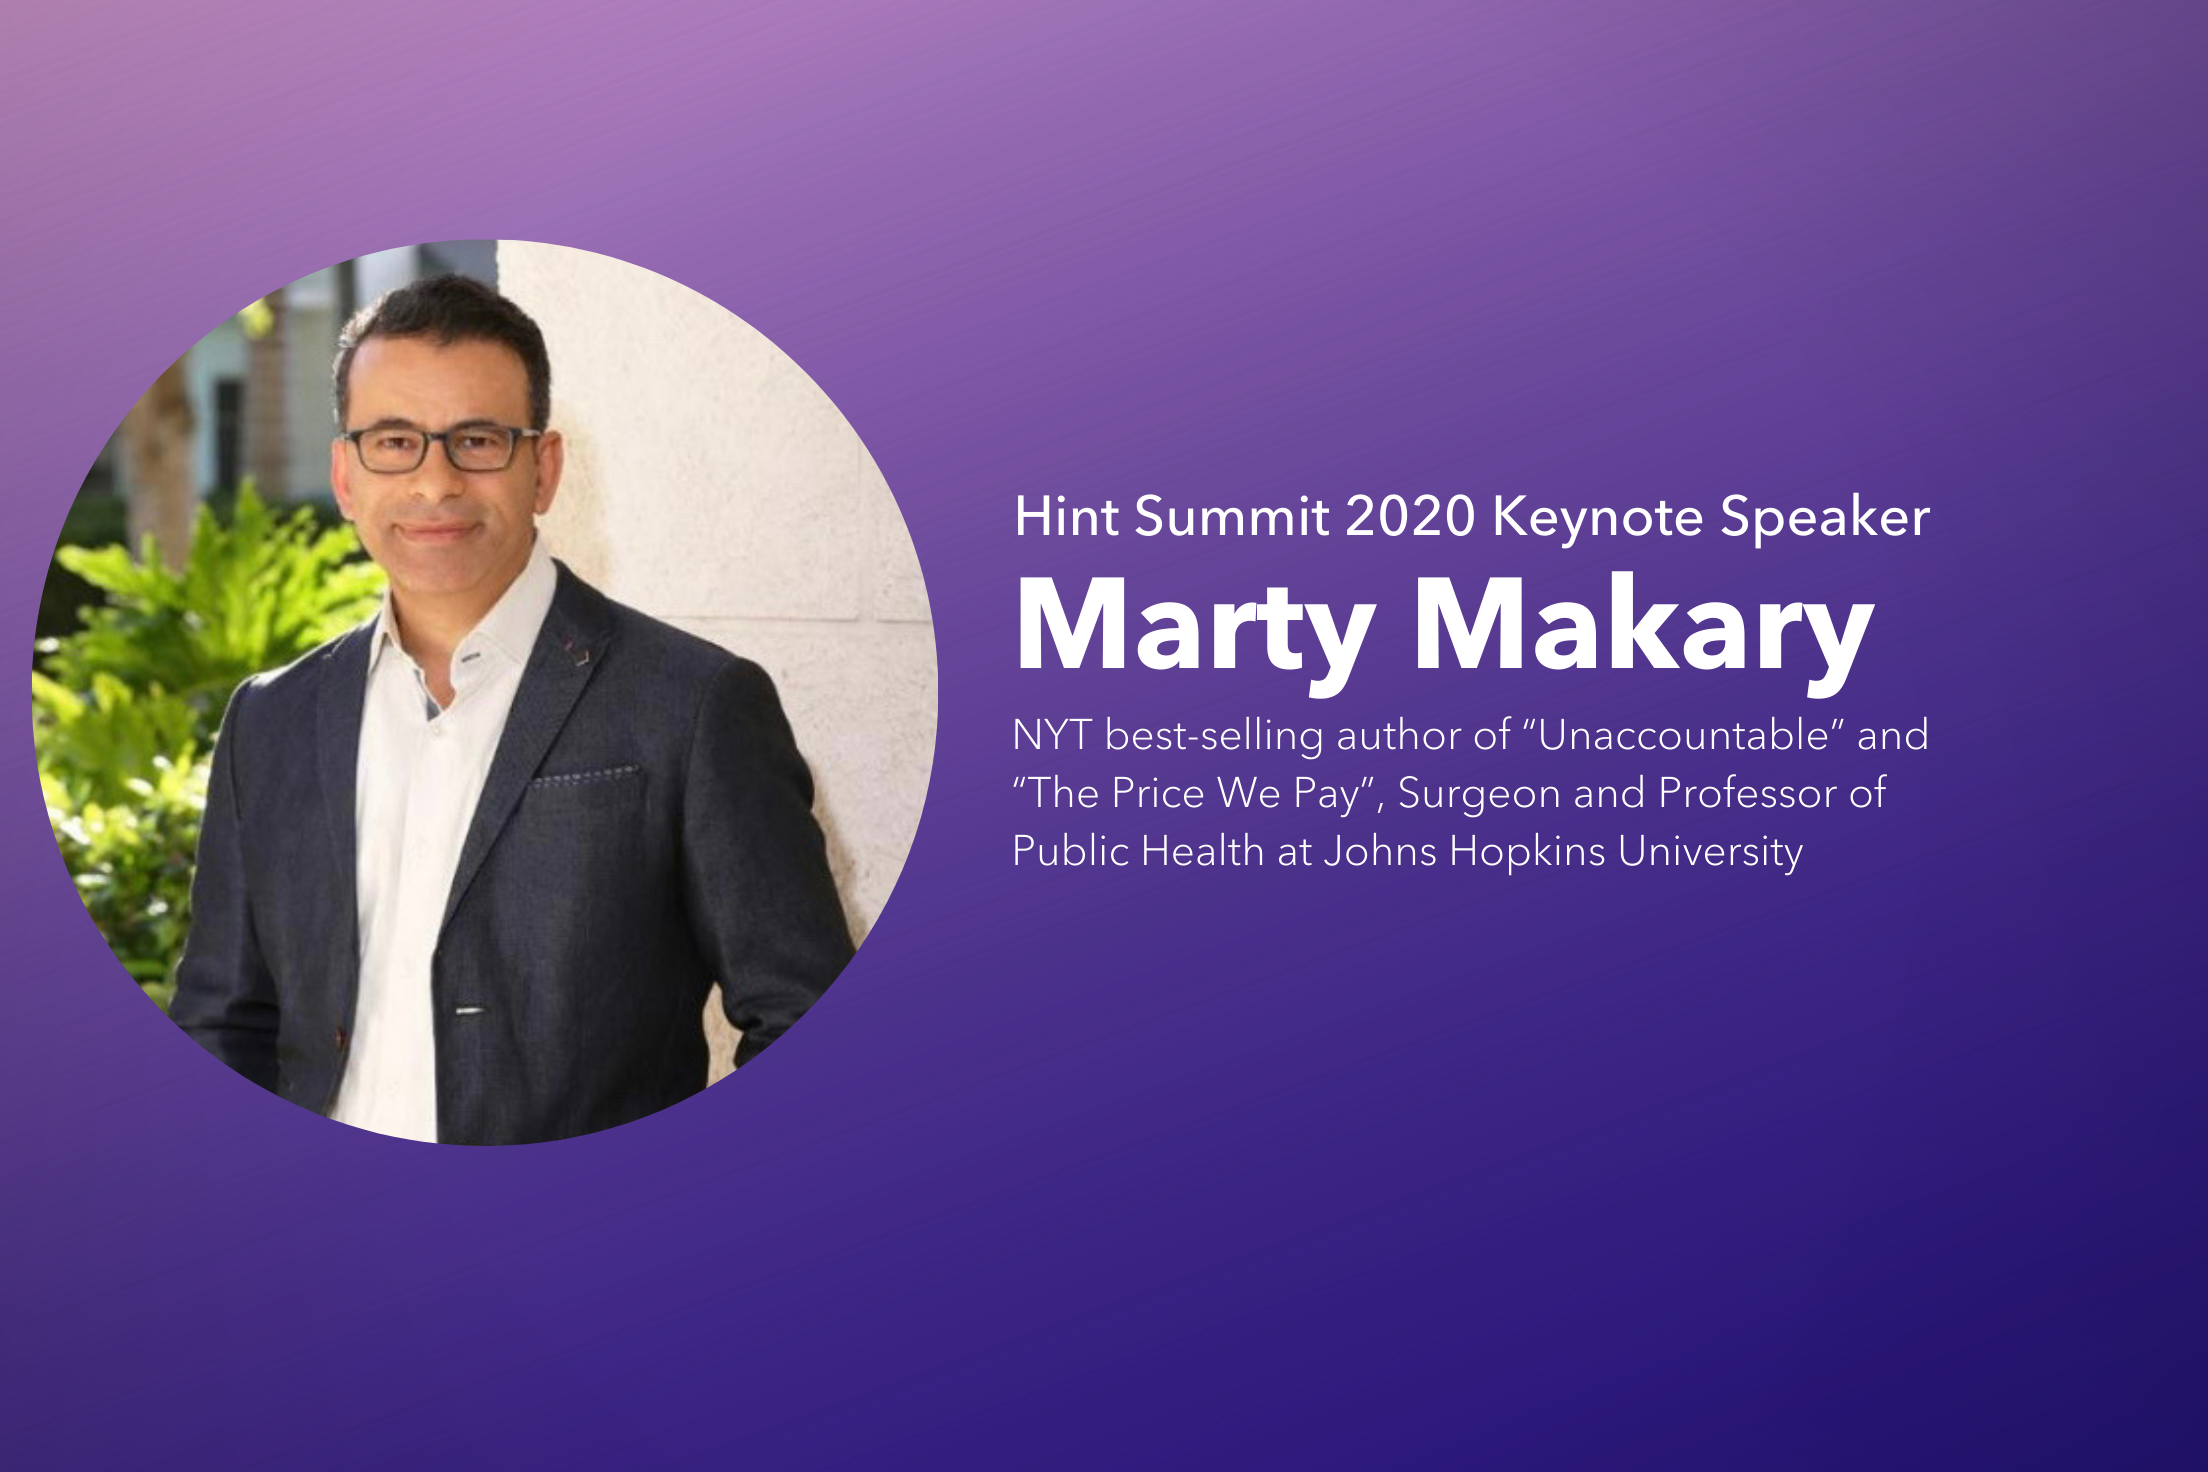 Join Marty Makary, NYT Bestselling Author & Healthcare Futurist, at Hint Summit 2020